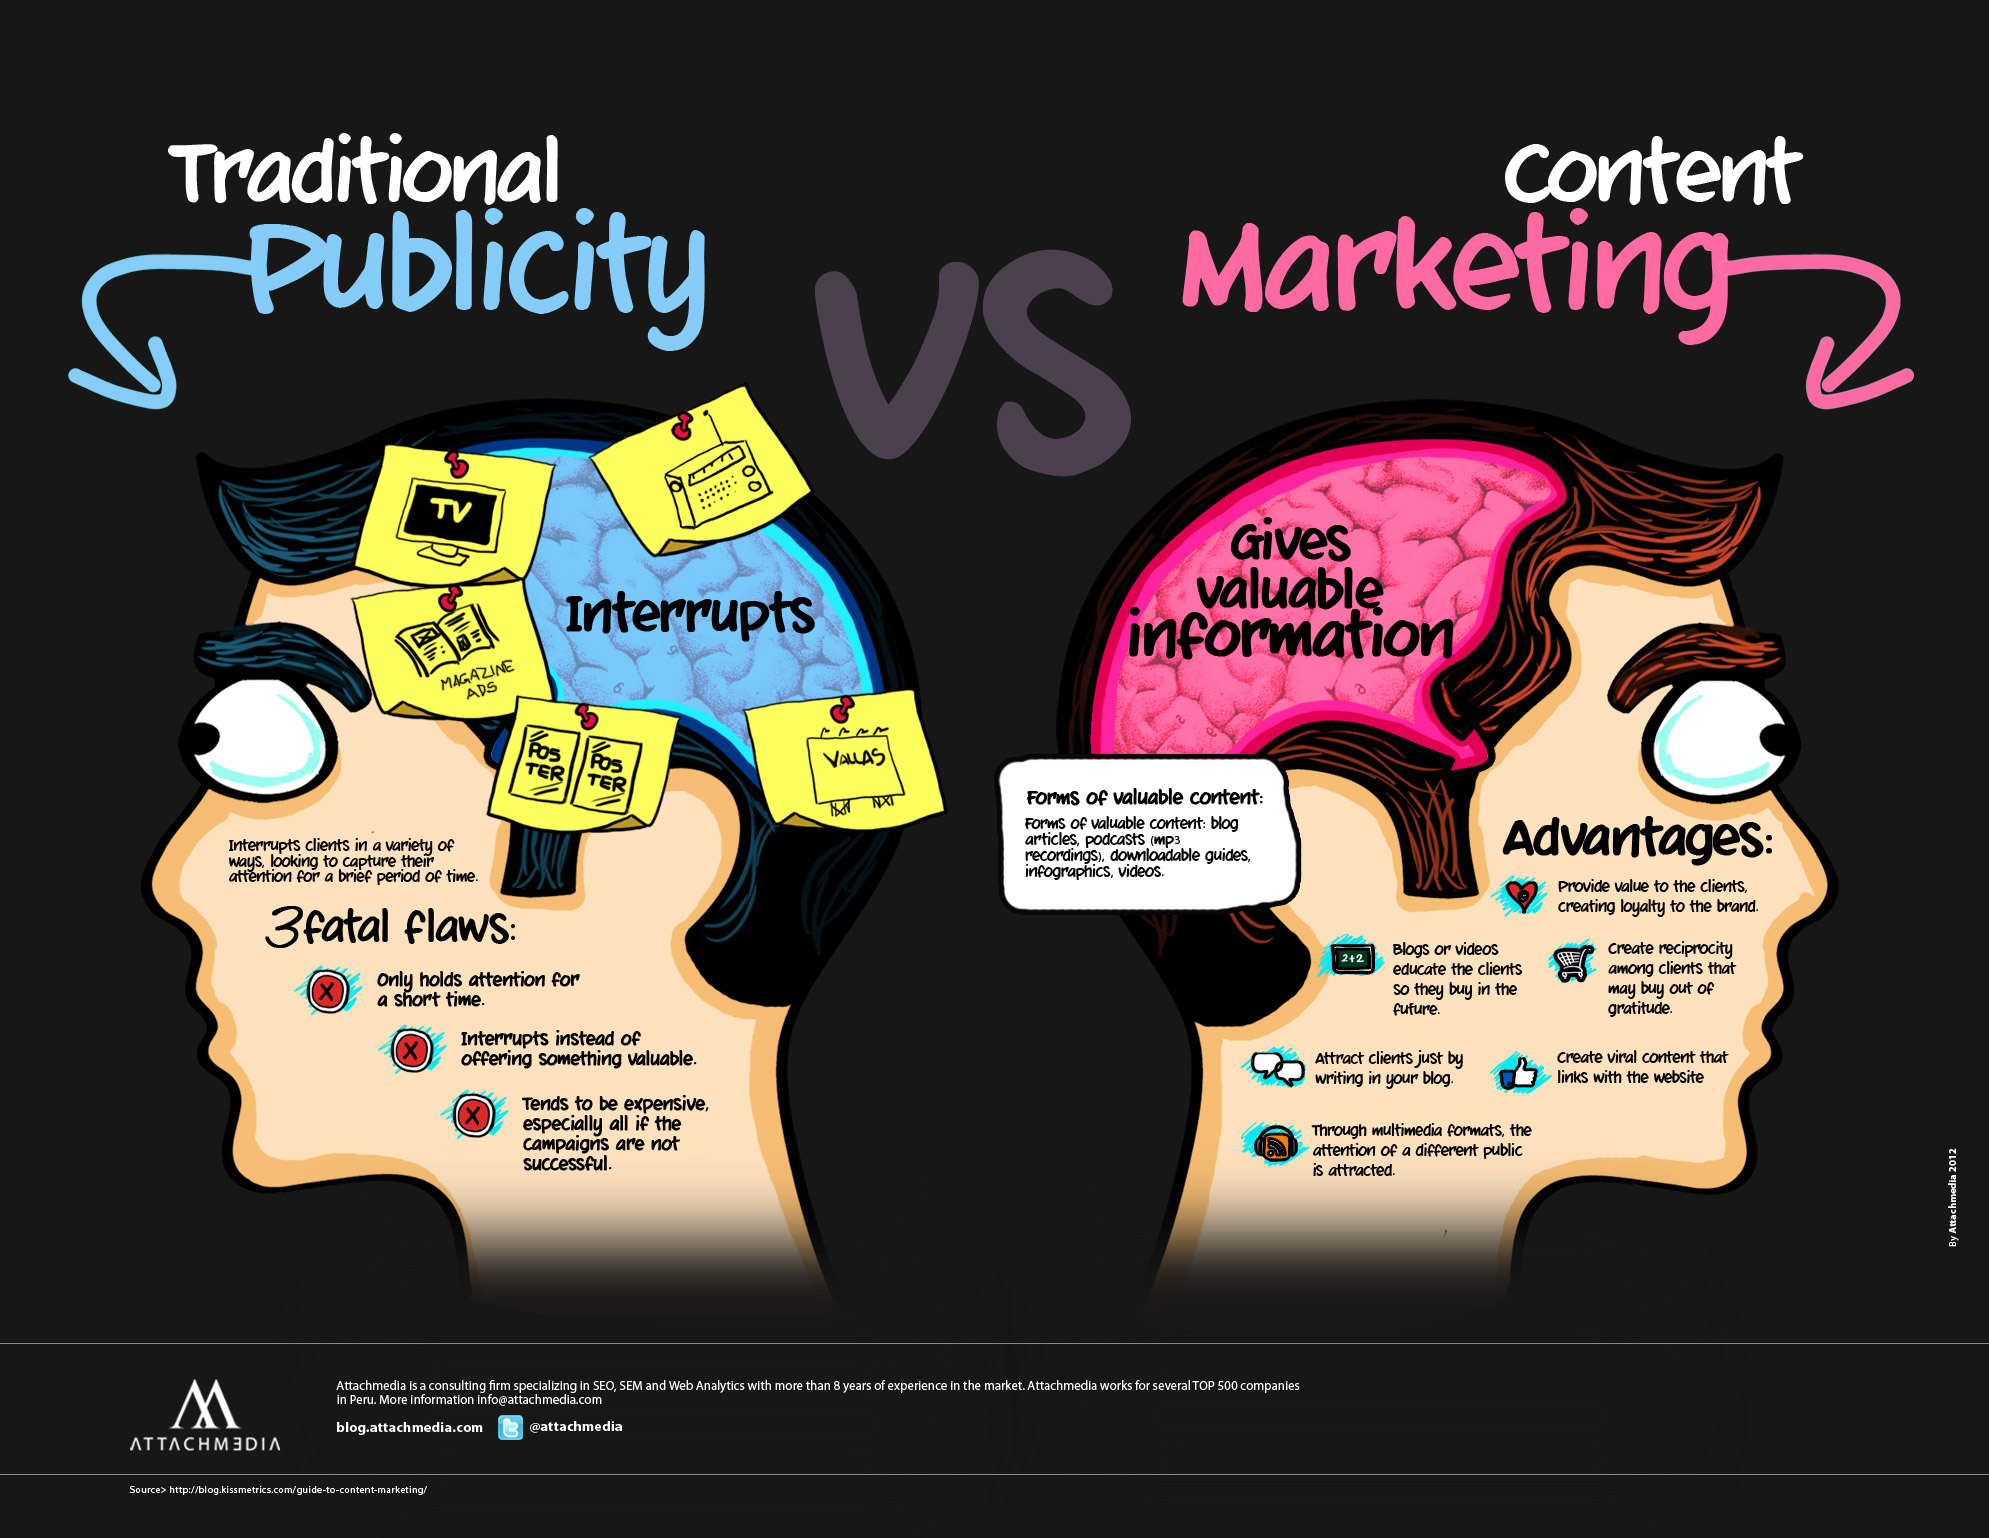 Content Marketing branding